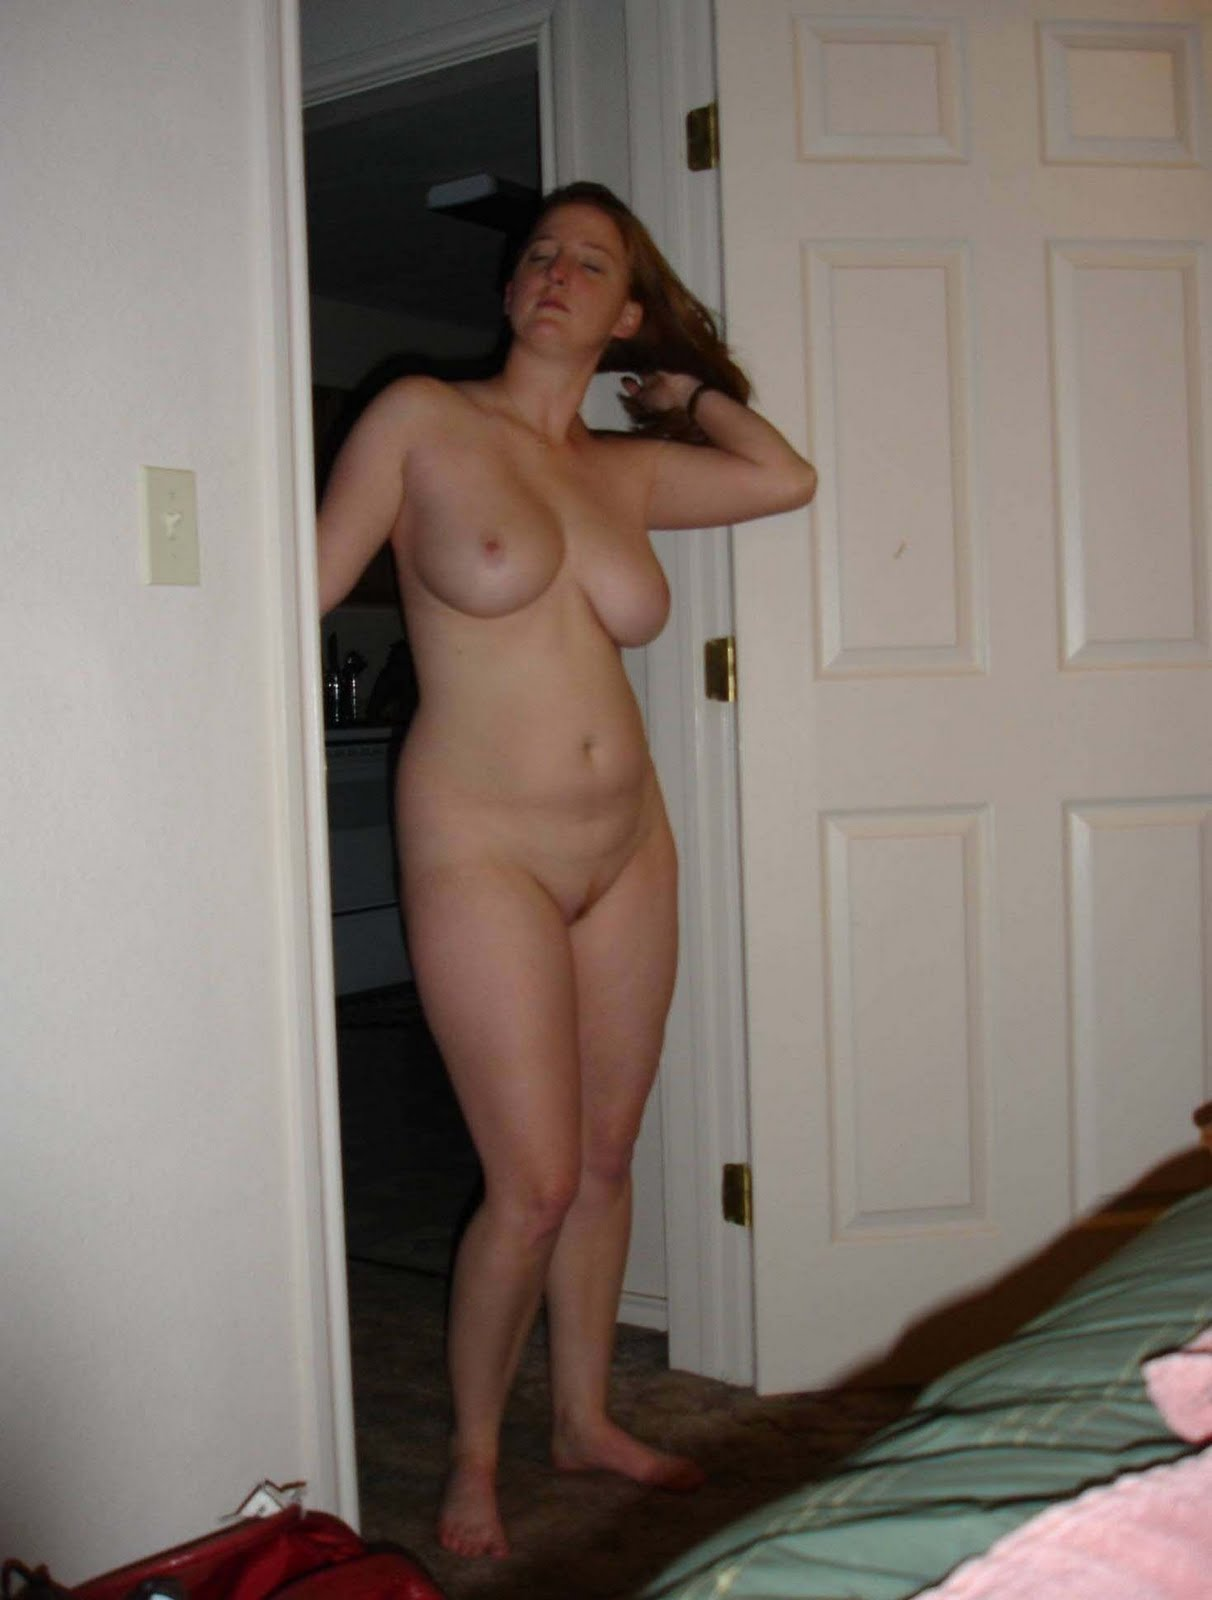 Nude girl play herself gif